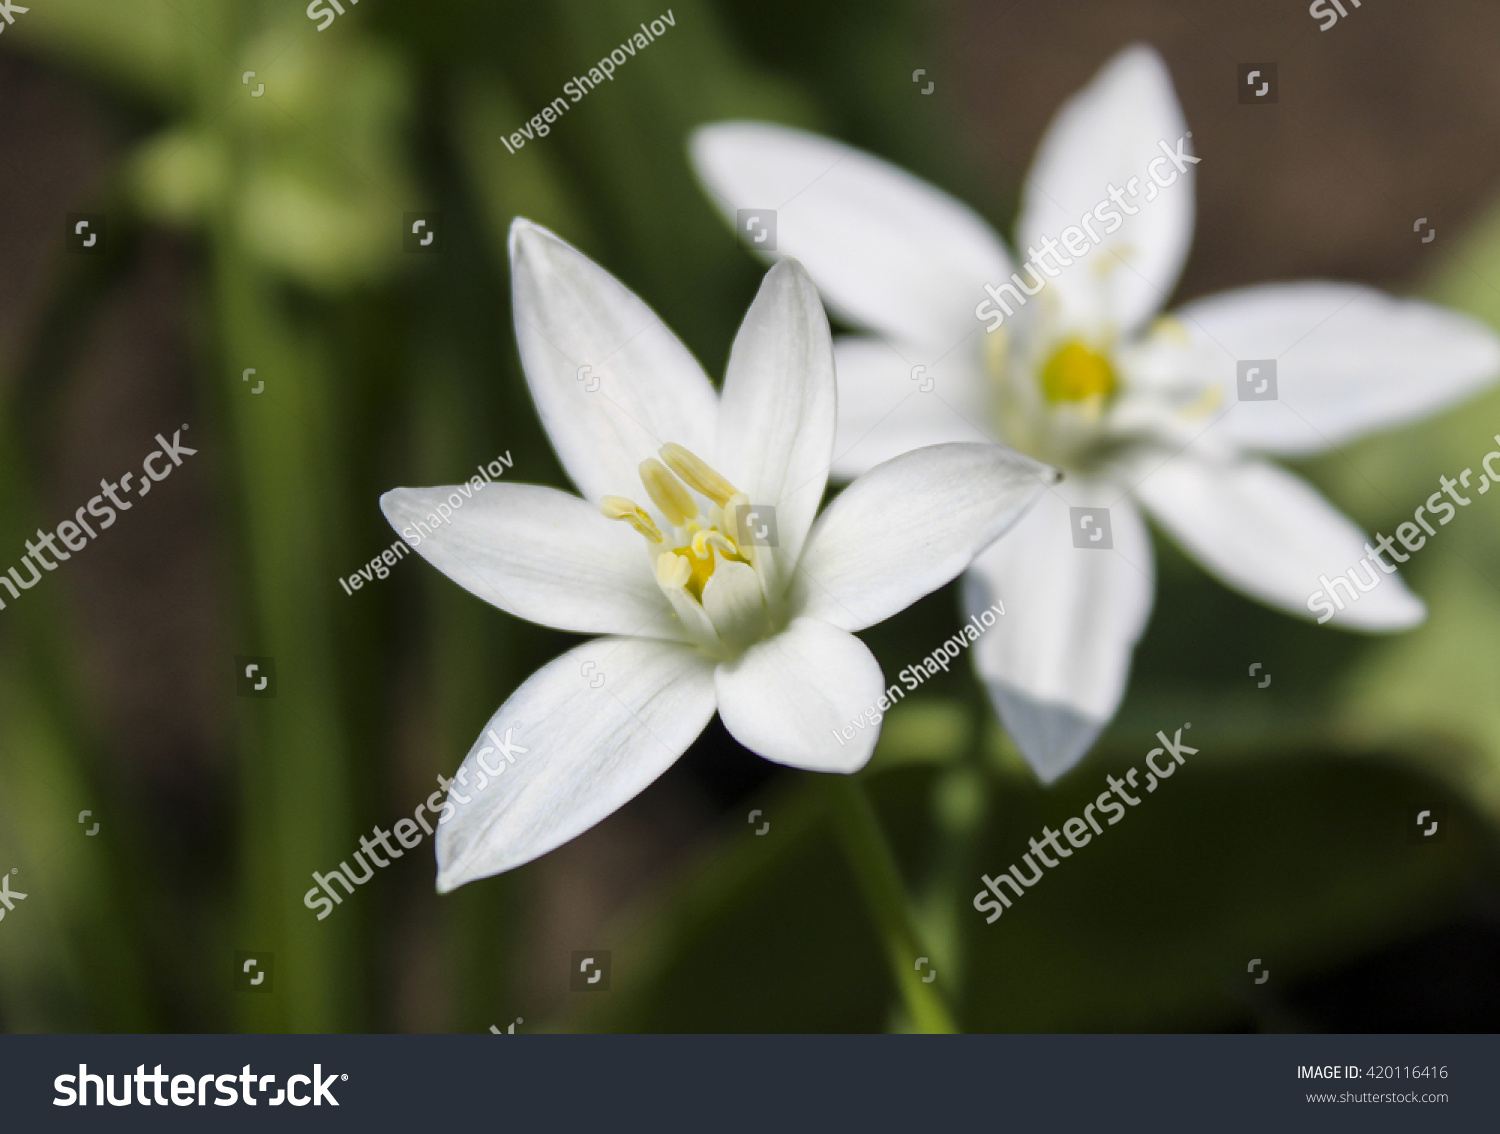 White Flower With Six Petals And A Yellow Center Against A Dark